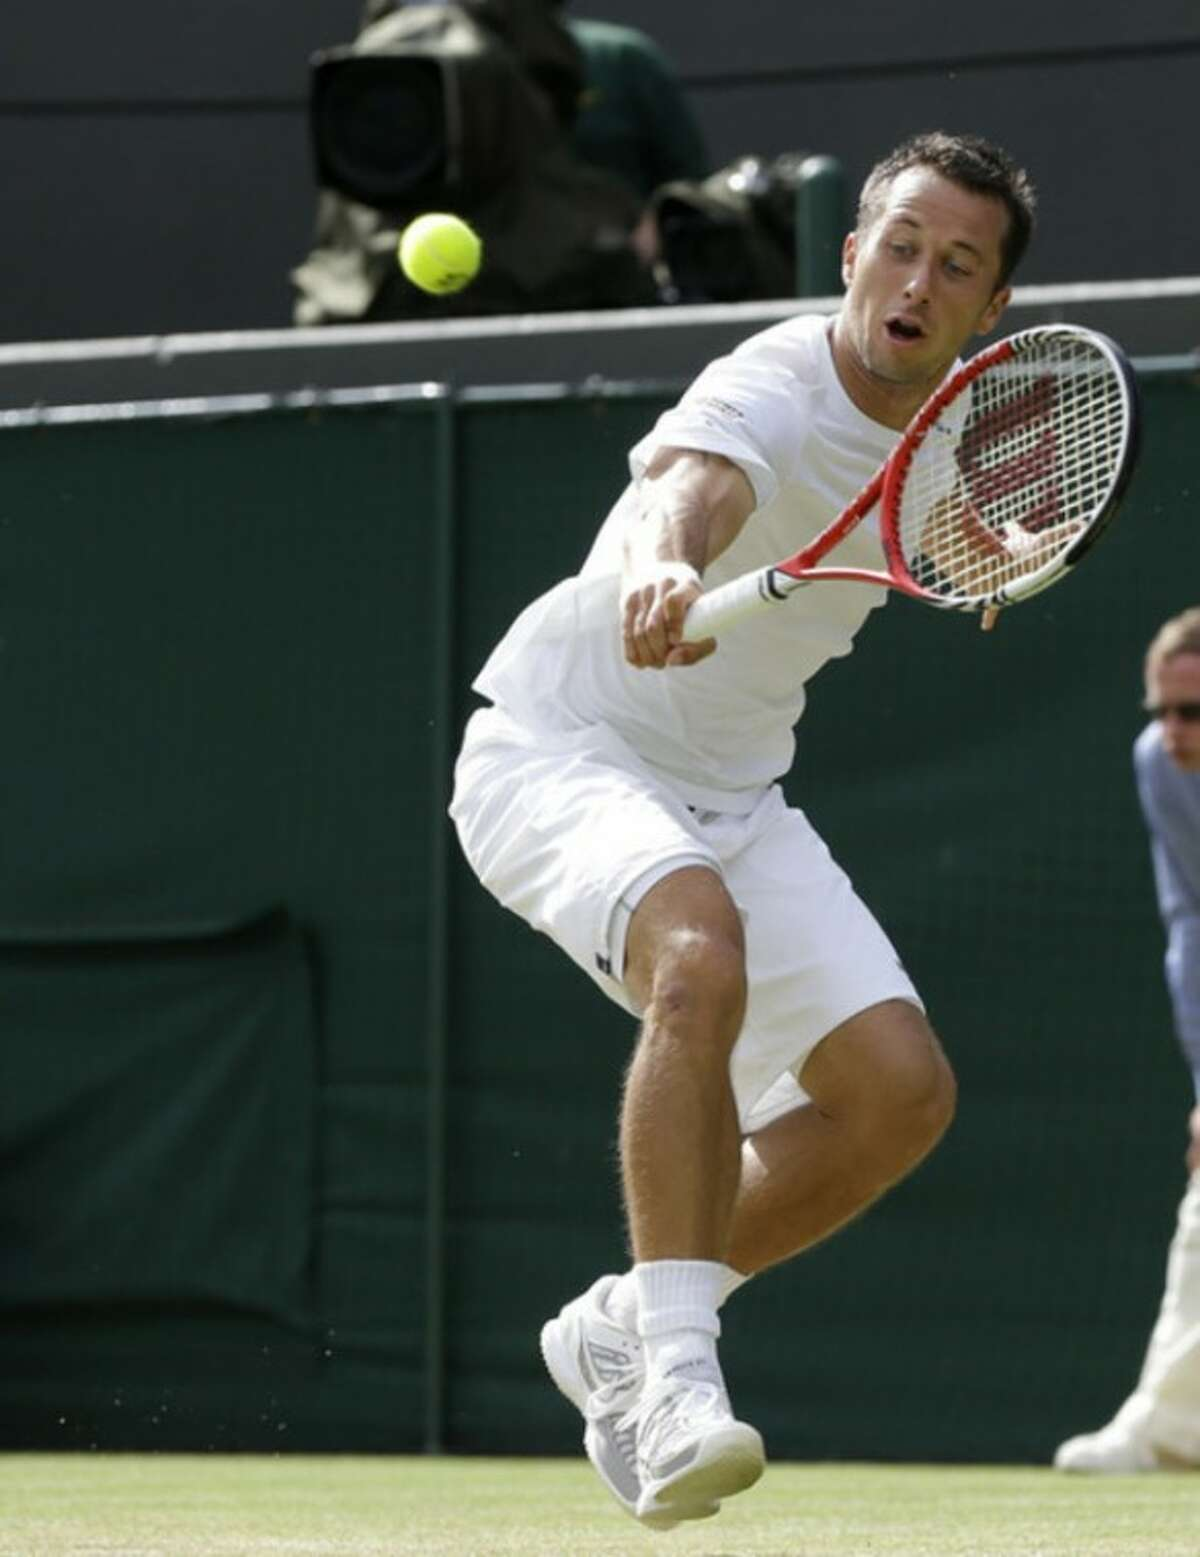 Philipp Kohlschreiber of Germany plays a shot to Jo-Wilfried Tsonga of France during a quarterfinals match at the All England Lawn Tennis Championships at Wimbledon, England, Wednesday, July 4, 2012. (AP Photo/Kirsty Wigglesworth)